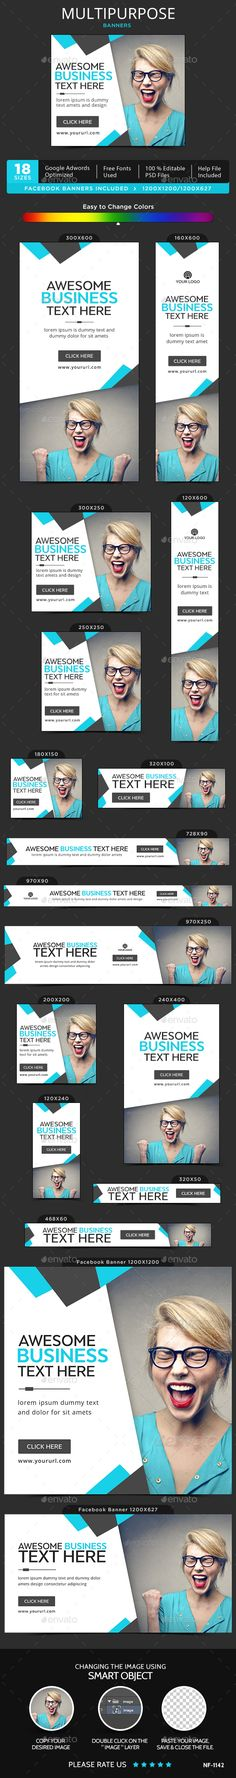 Multipurpose Web Banners Template PSD. Download here: http://graphicriver.net/item/multipurpose-banners/15233782?ref=ksioks